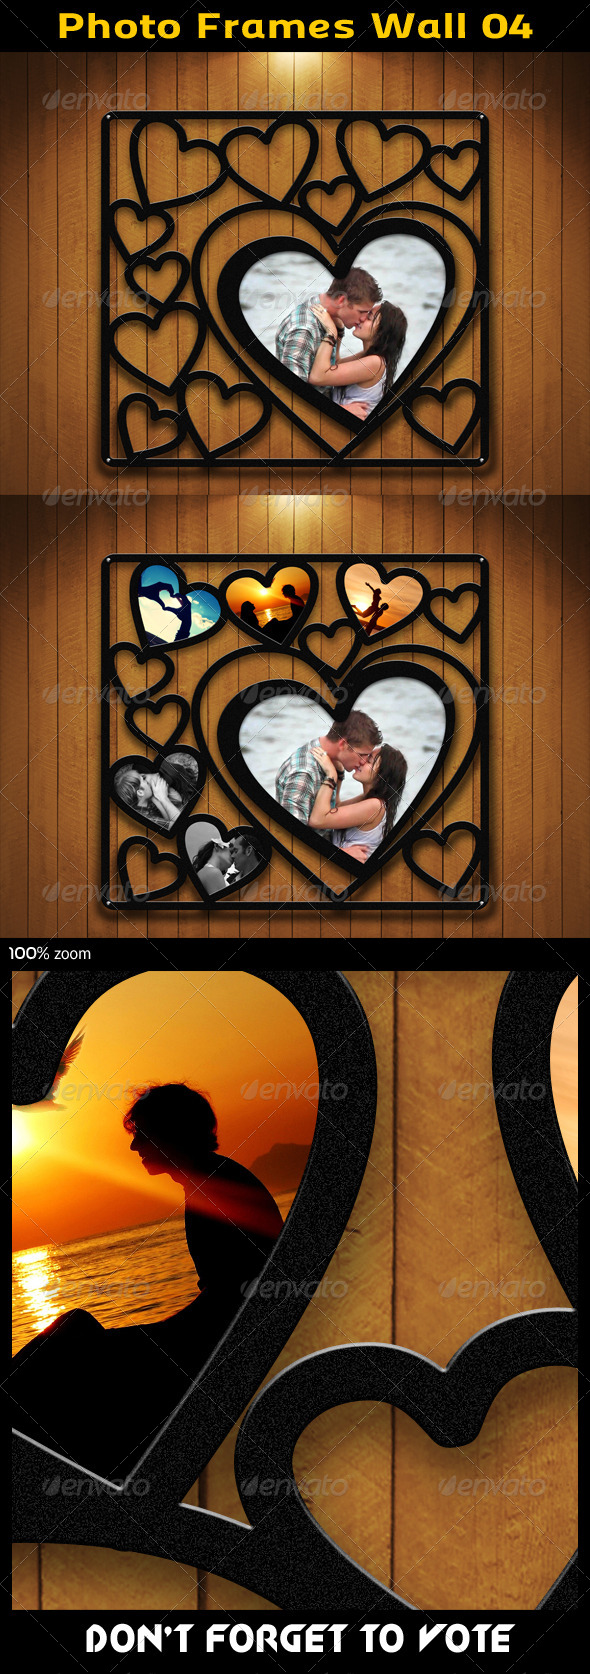 Photo Frames Wall 04